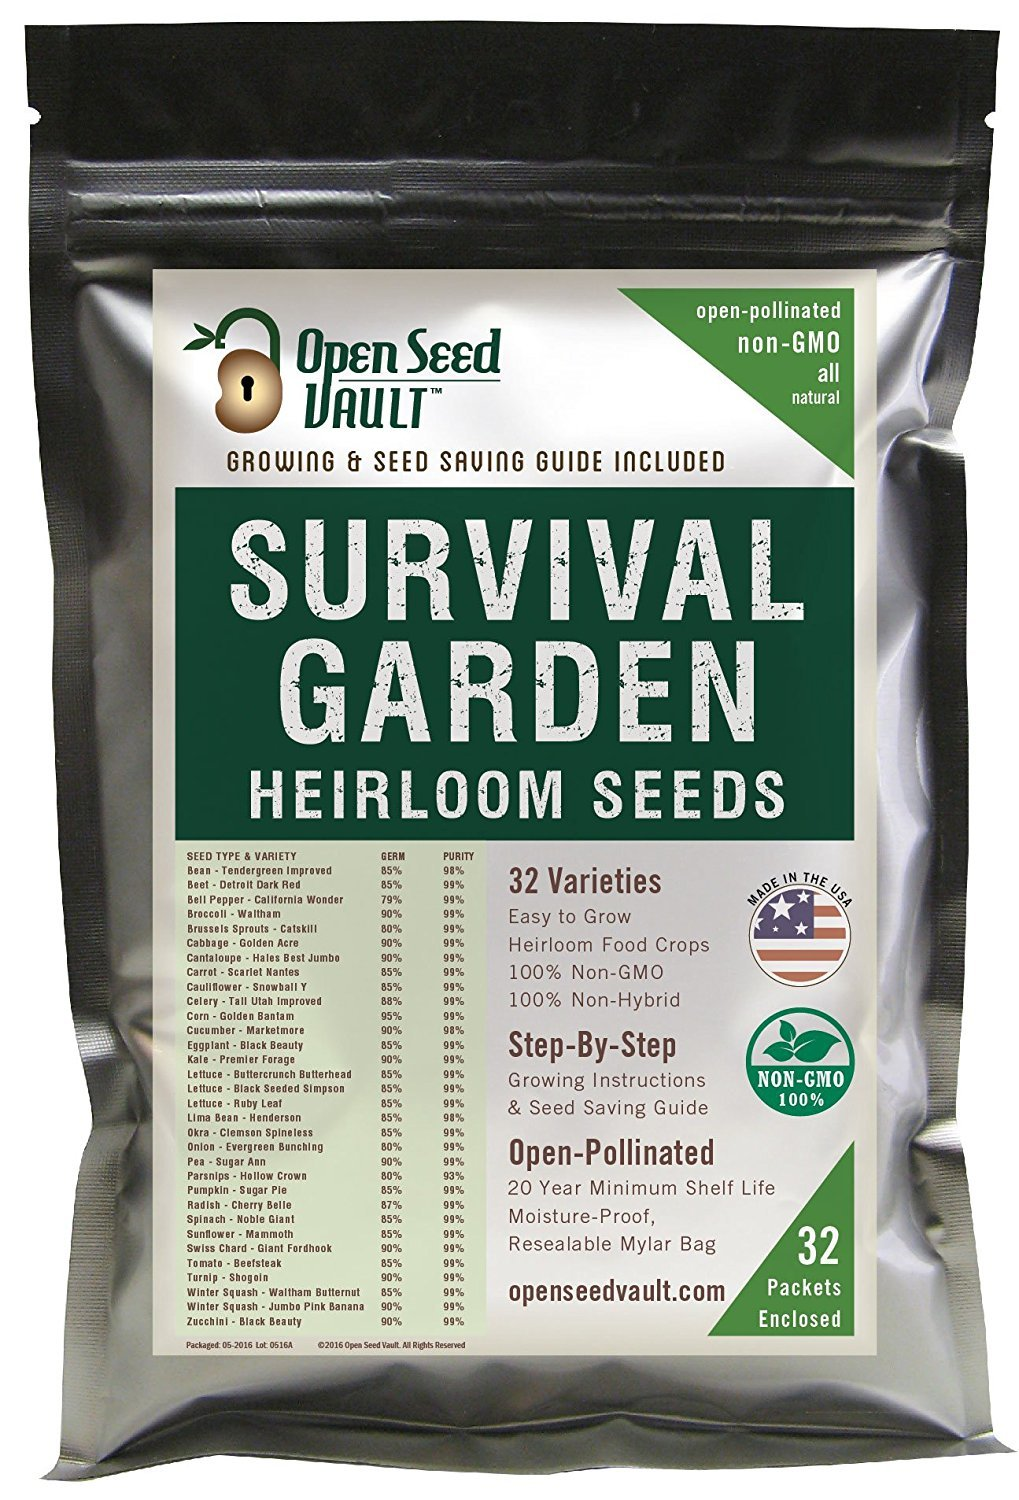 15,000 Seed 32 Vegetable Fruit Variety Garden Pack Emergency Survival Kit Mre ... by Open Seed Vault